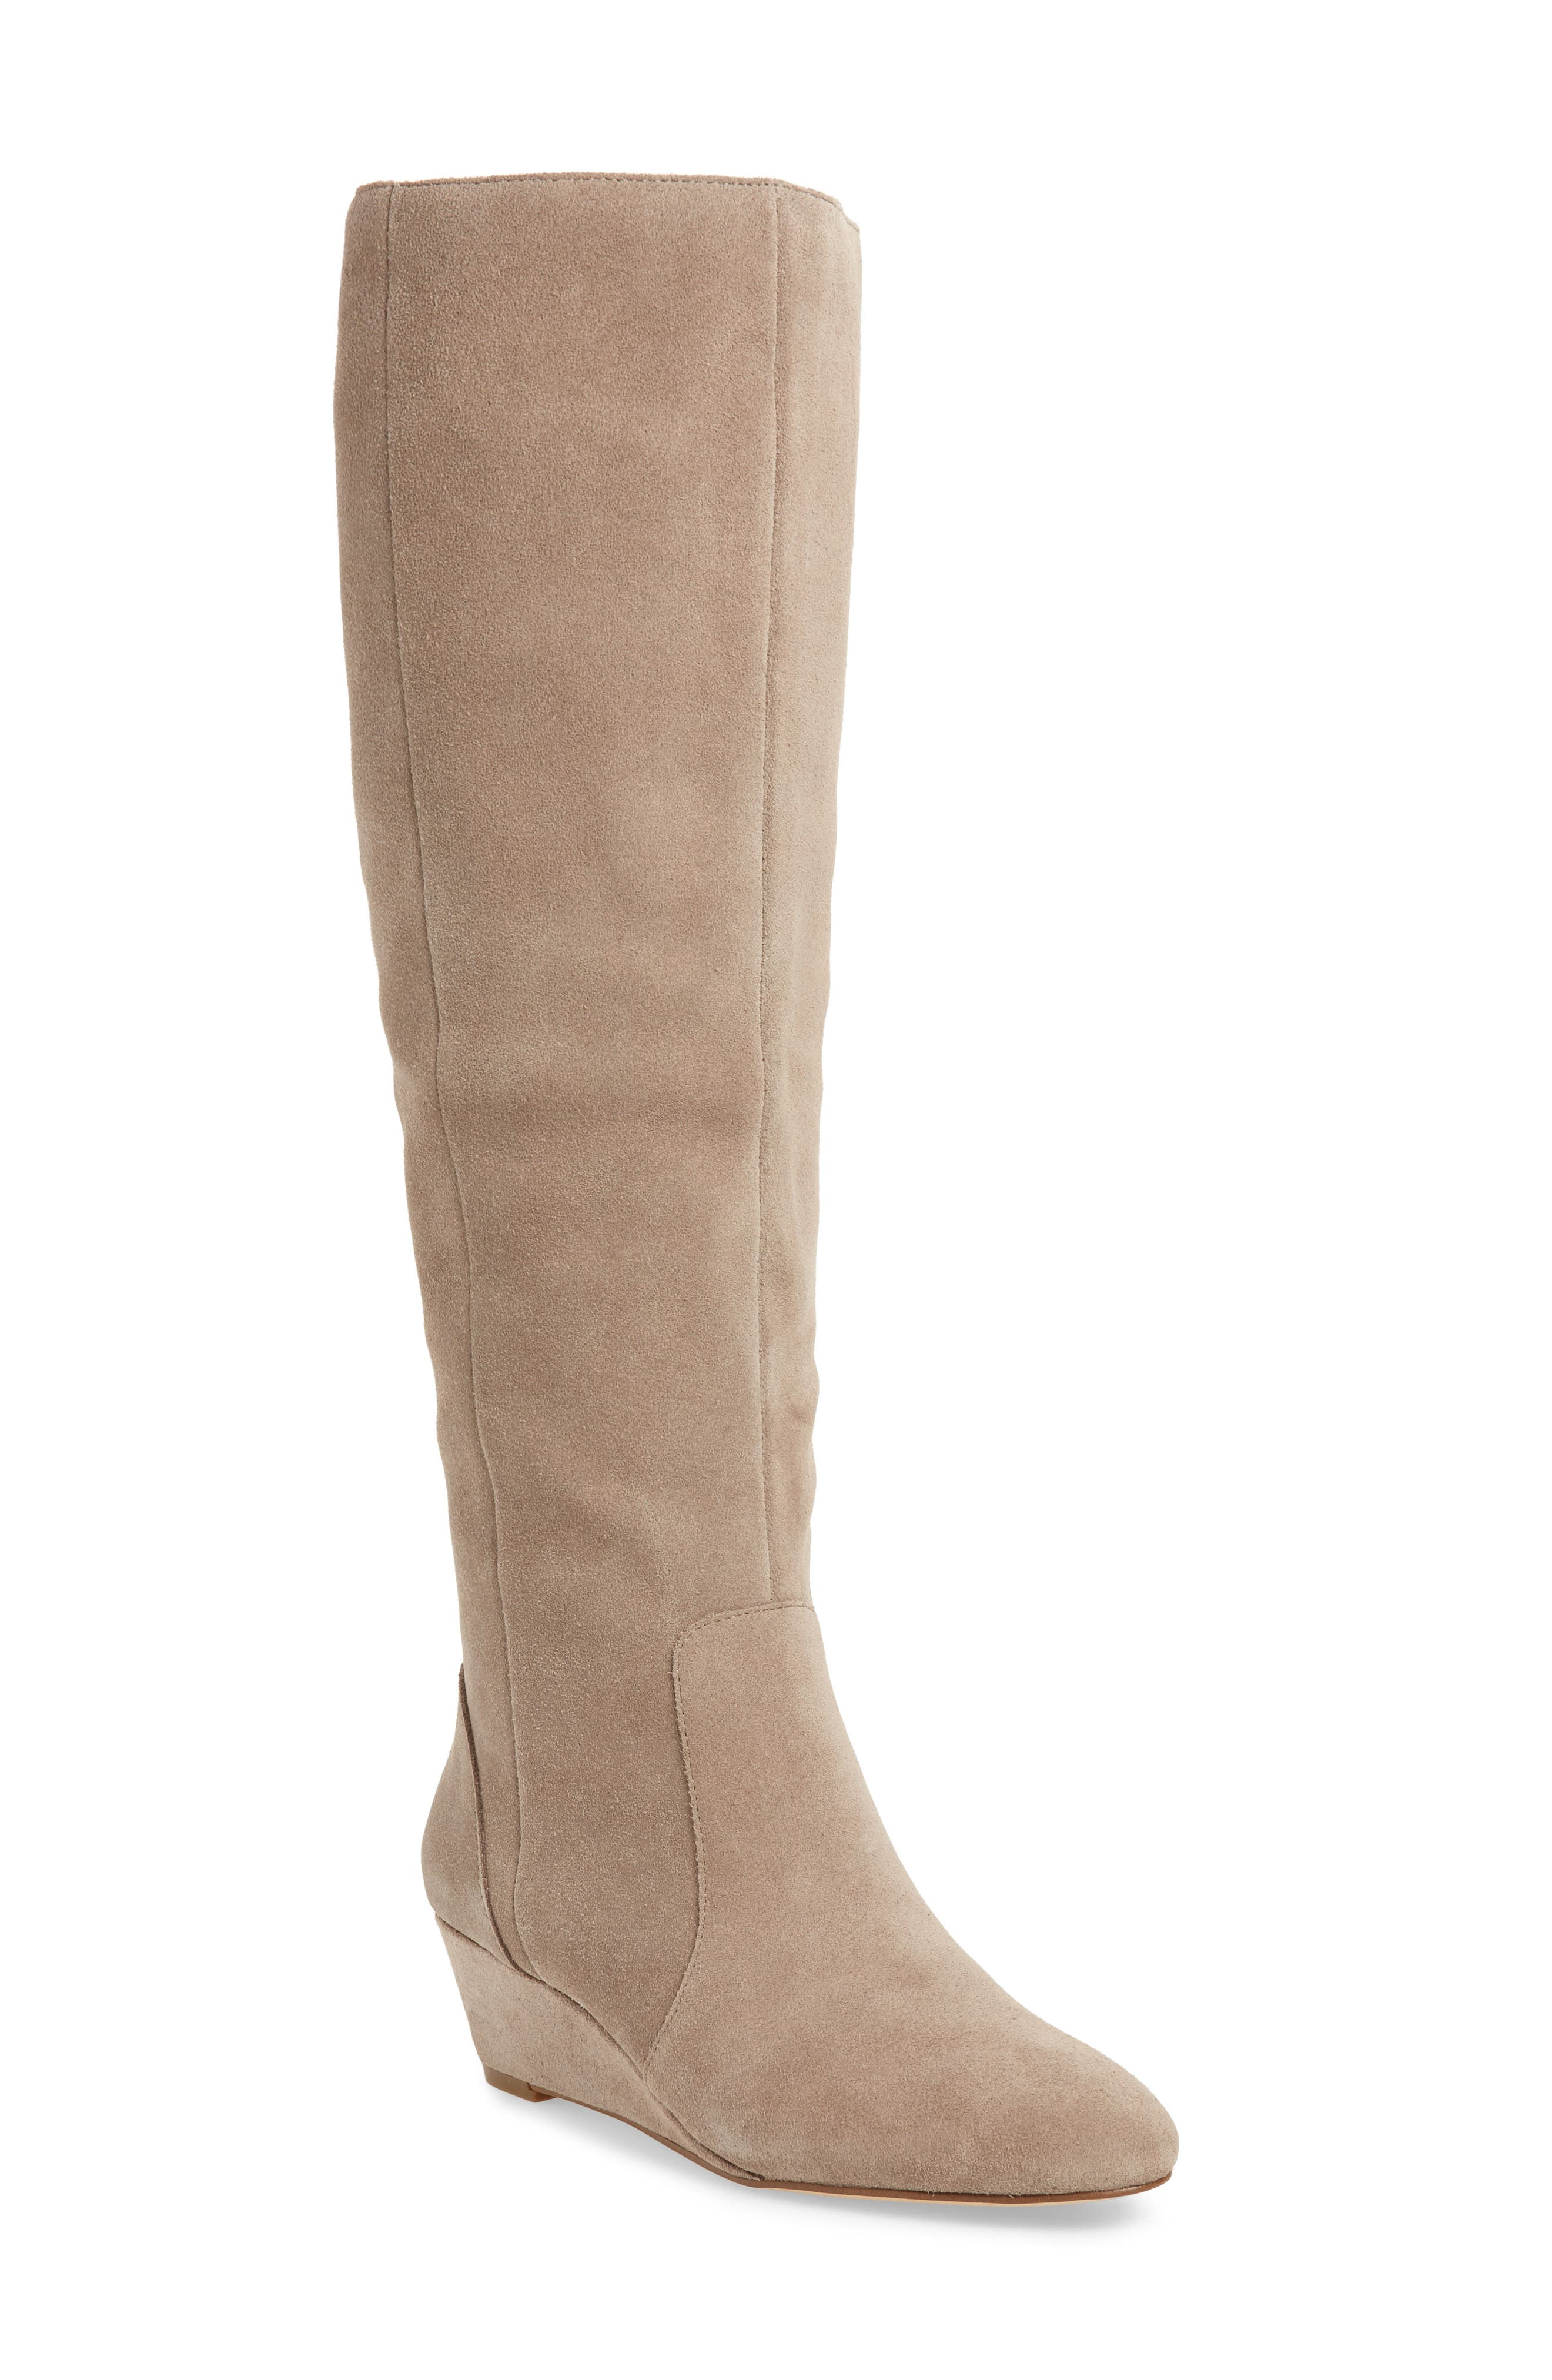 Aileena Over the Knee Boot,                         Main,                         color, 263